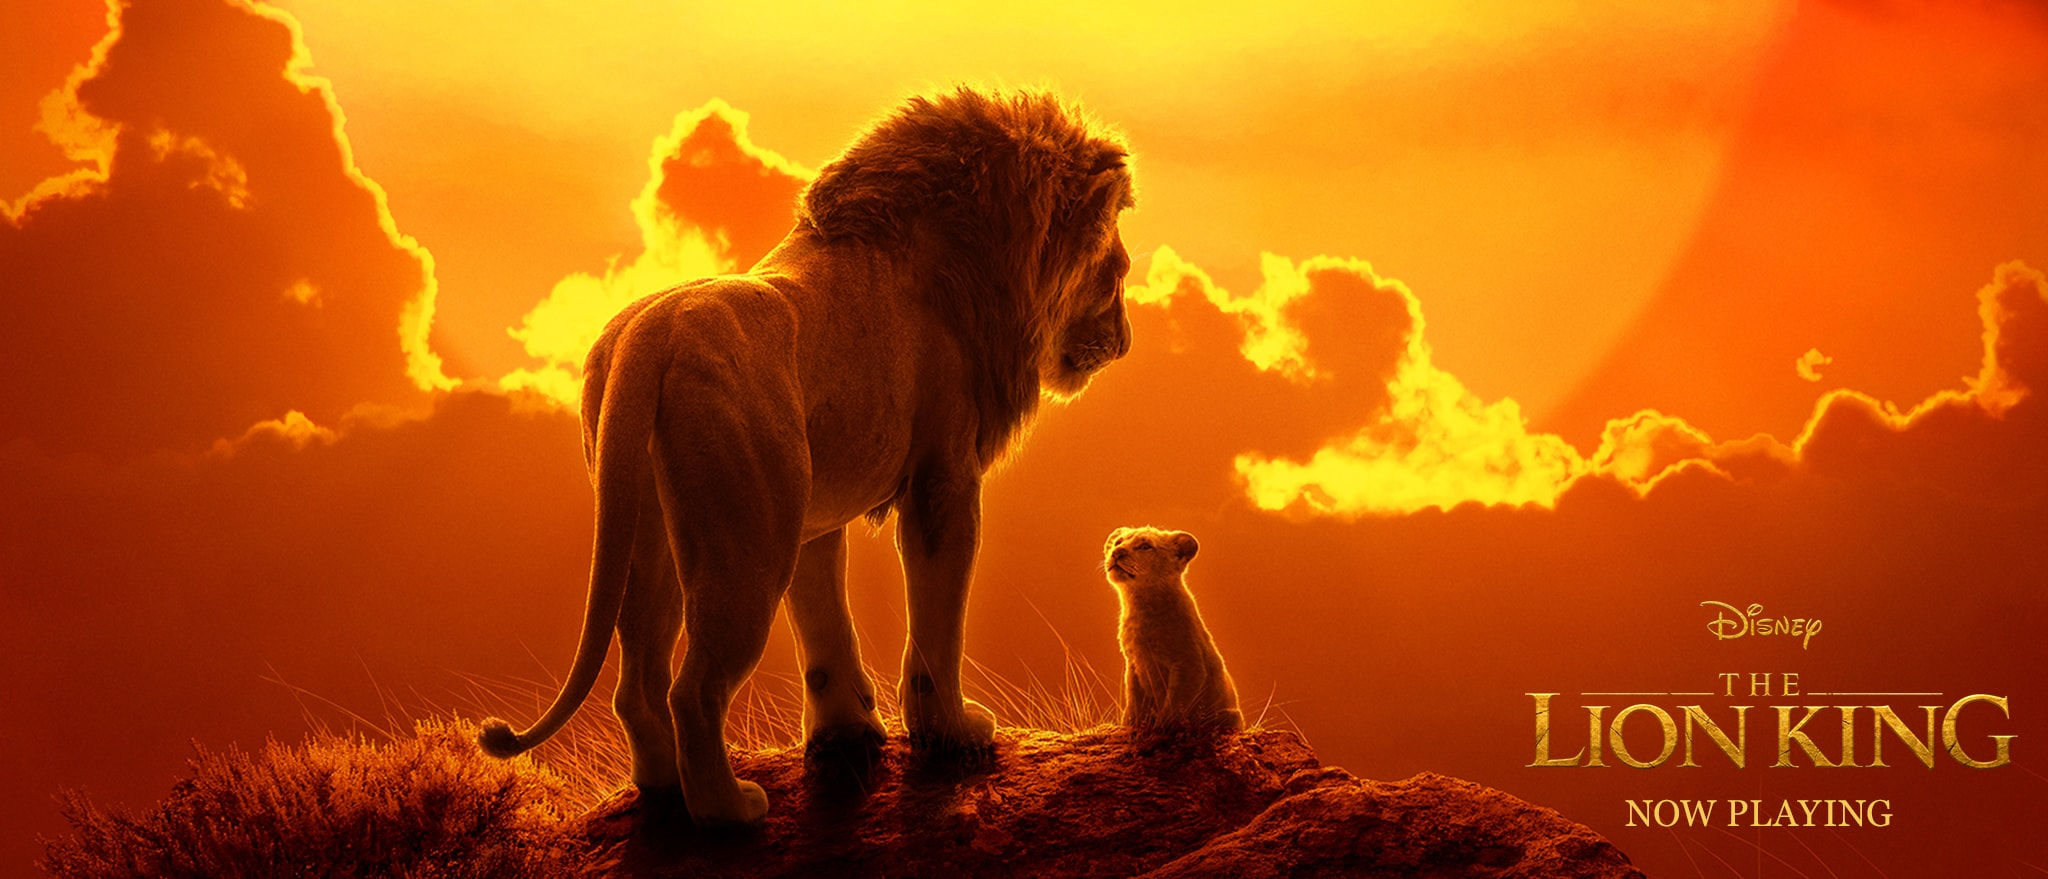 Five Things I Love About the New Lion King